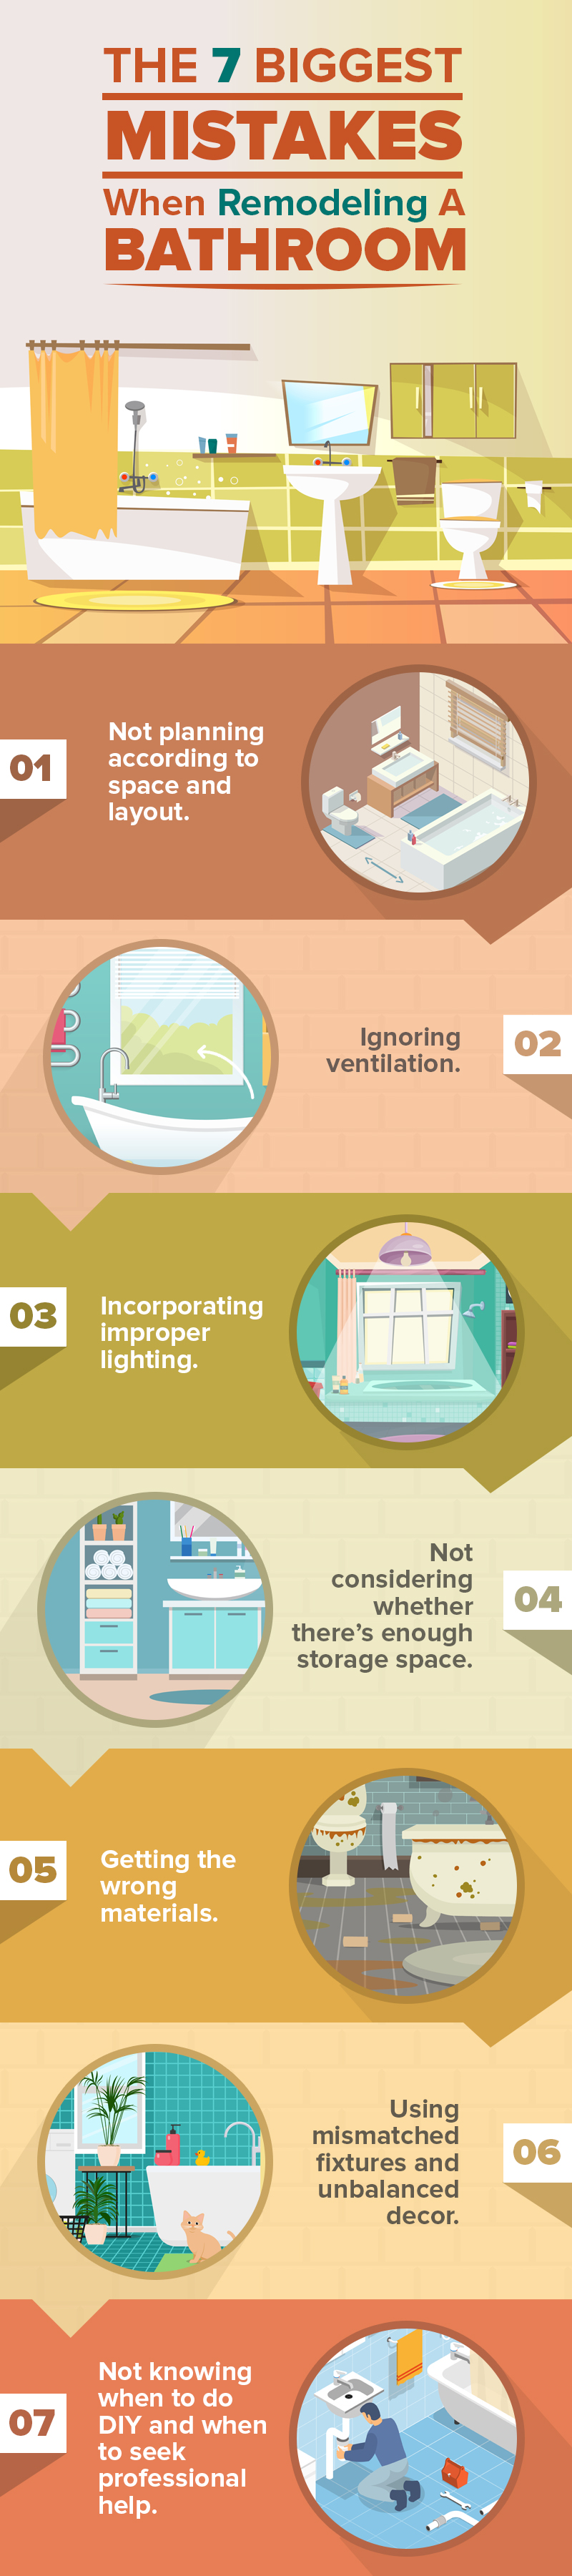 The 7 Worst Things To Do When Remodeling Your Bathroom